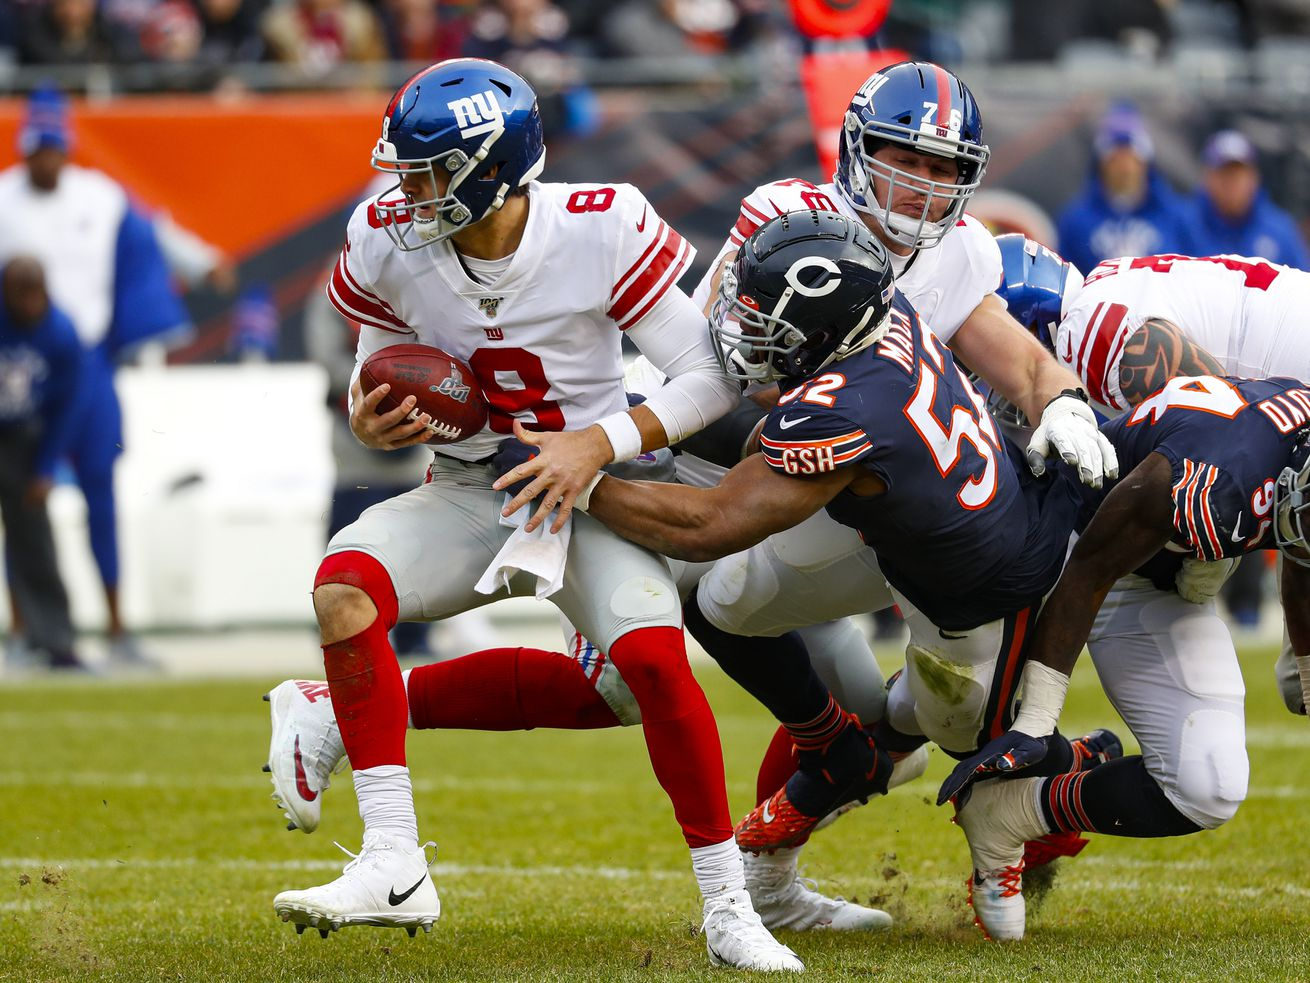 Bears vs. Giants: What to Watch 4